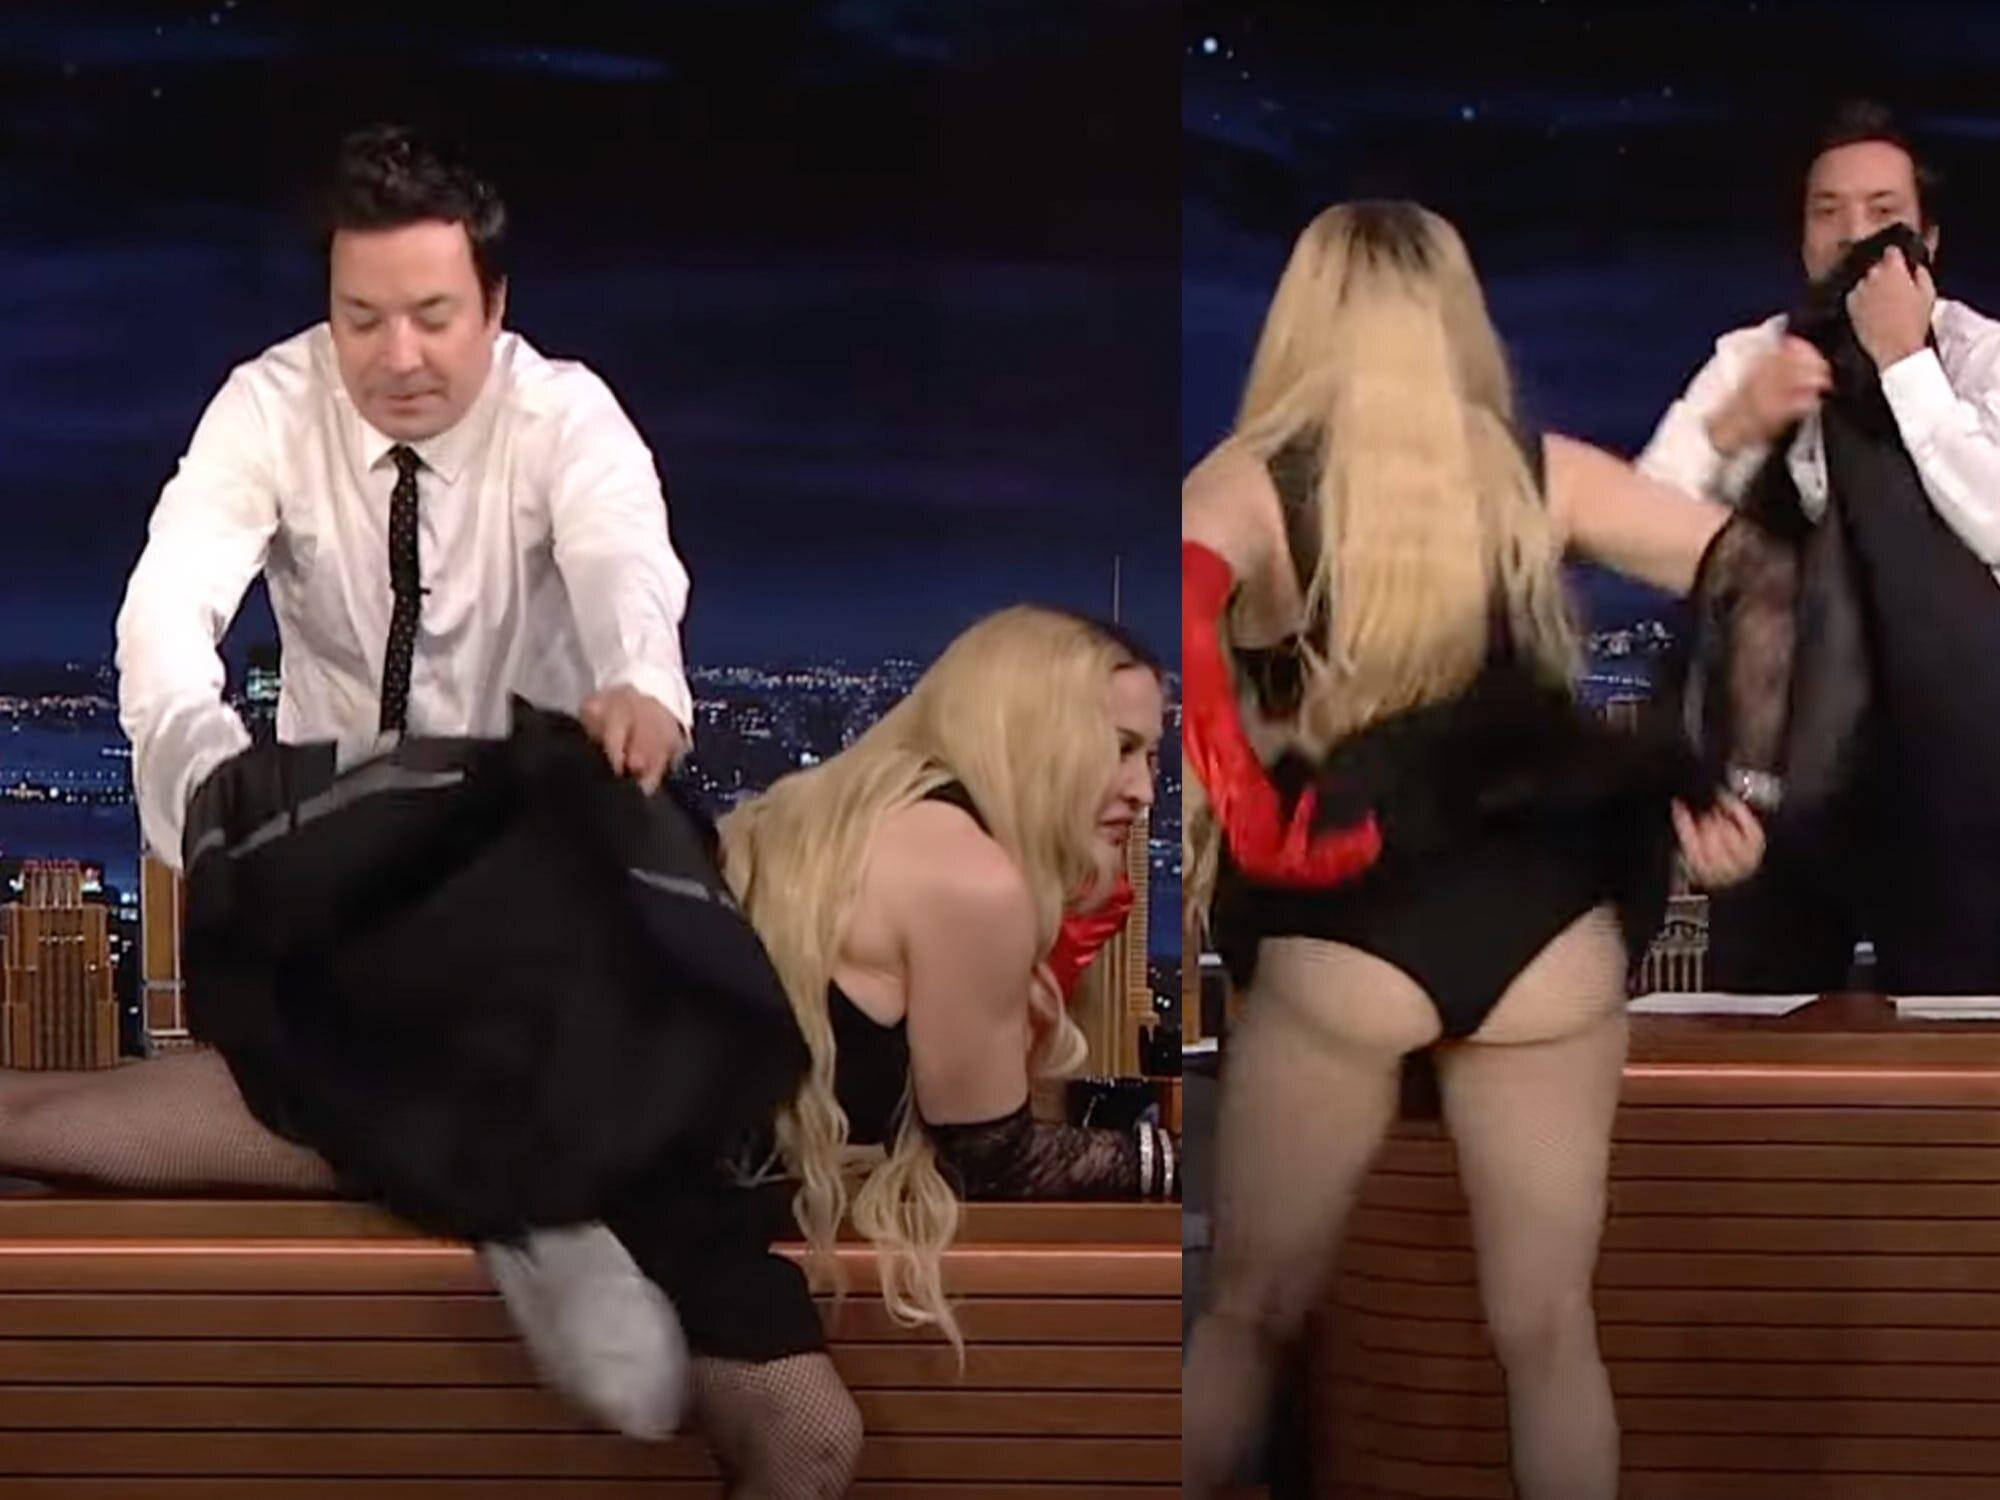 Madonna lifted her skirt on camera and laid down on Jimmy Fallon's table